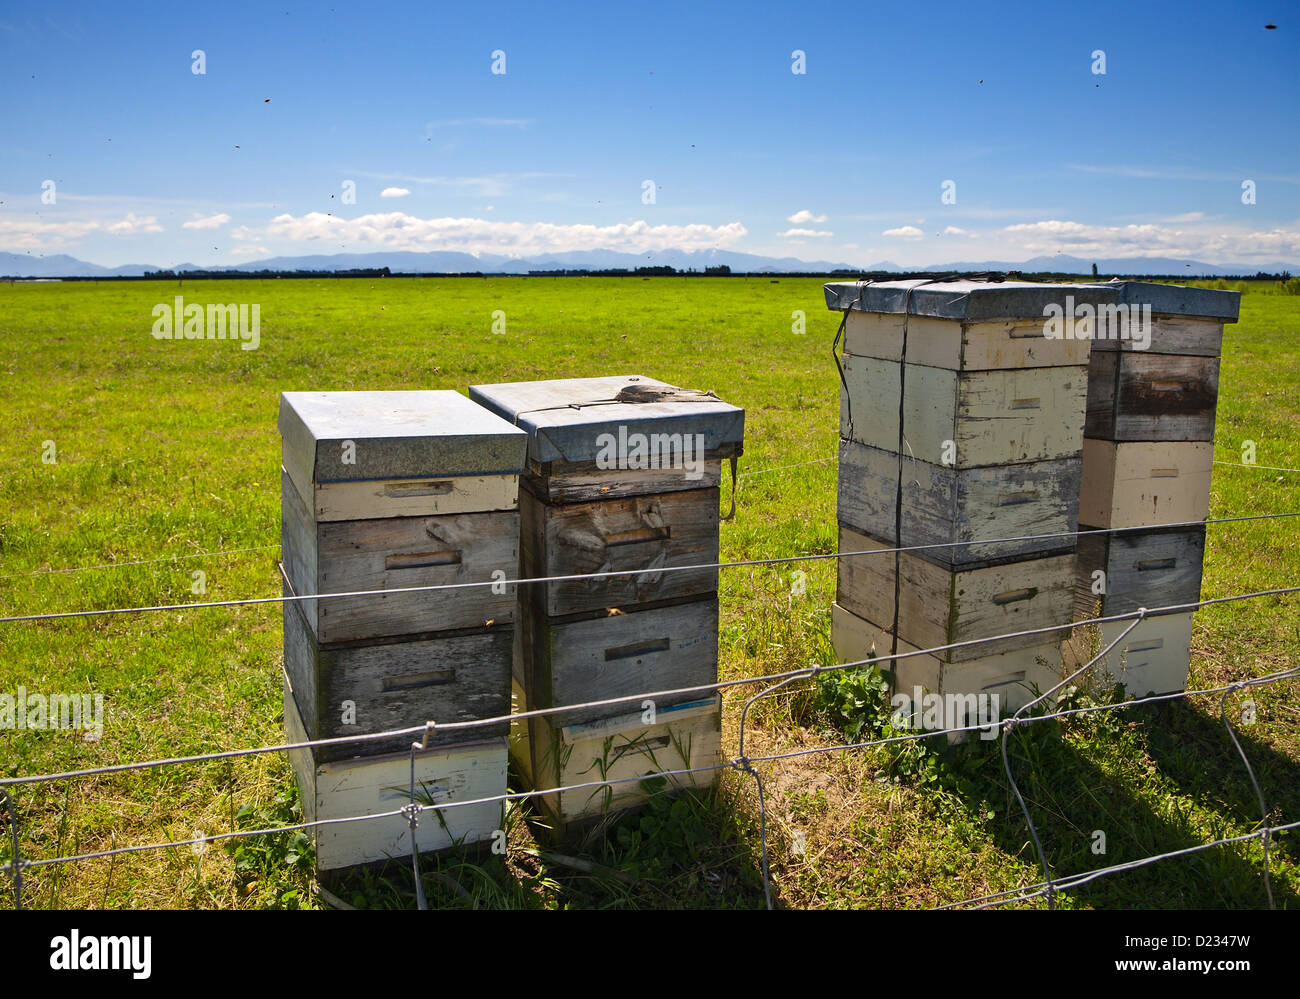 Honey bees flying around stacked beehives in rural Canterbury, South island, New Zealand. Summer. - Stock Image